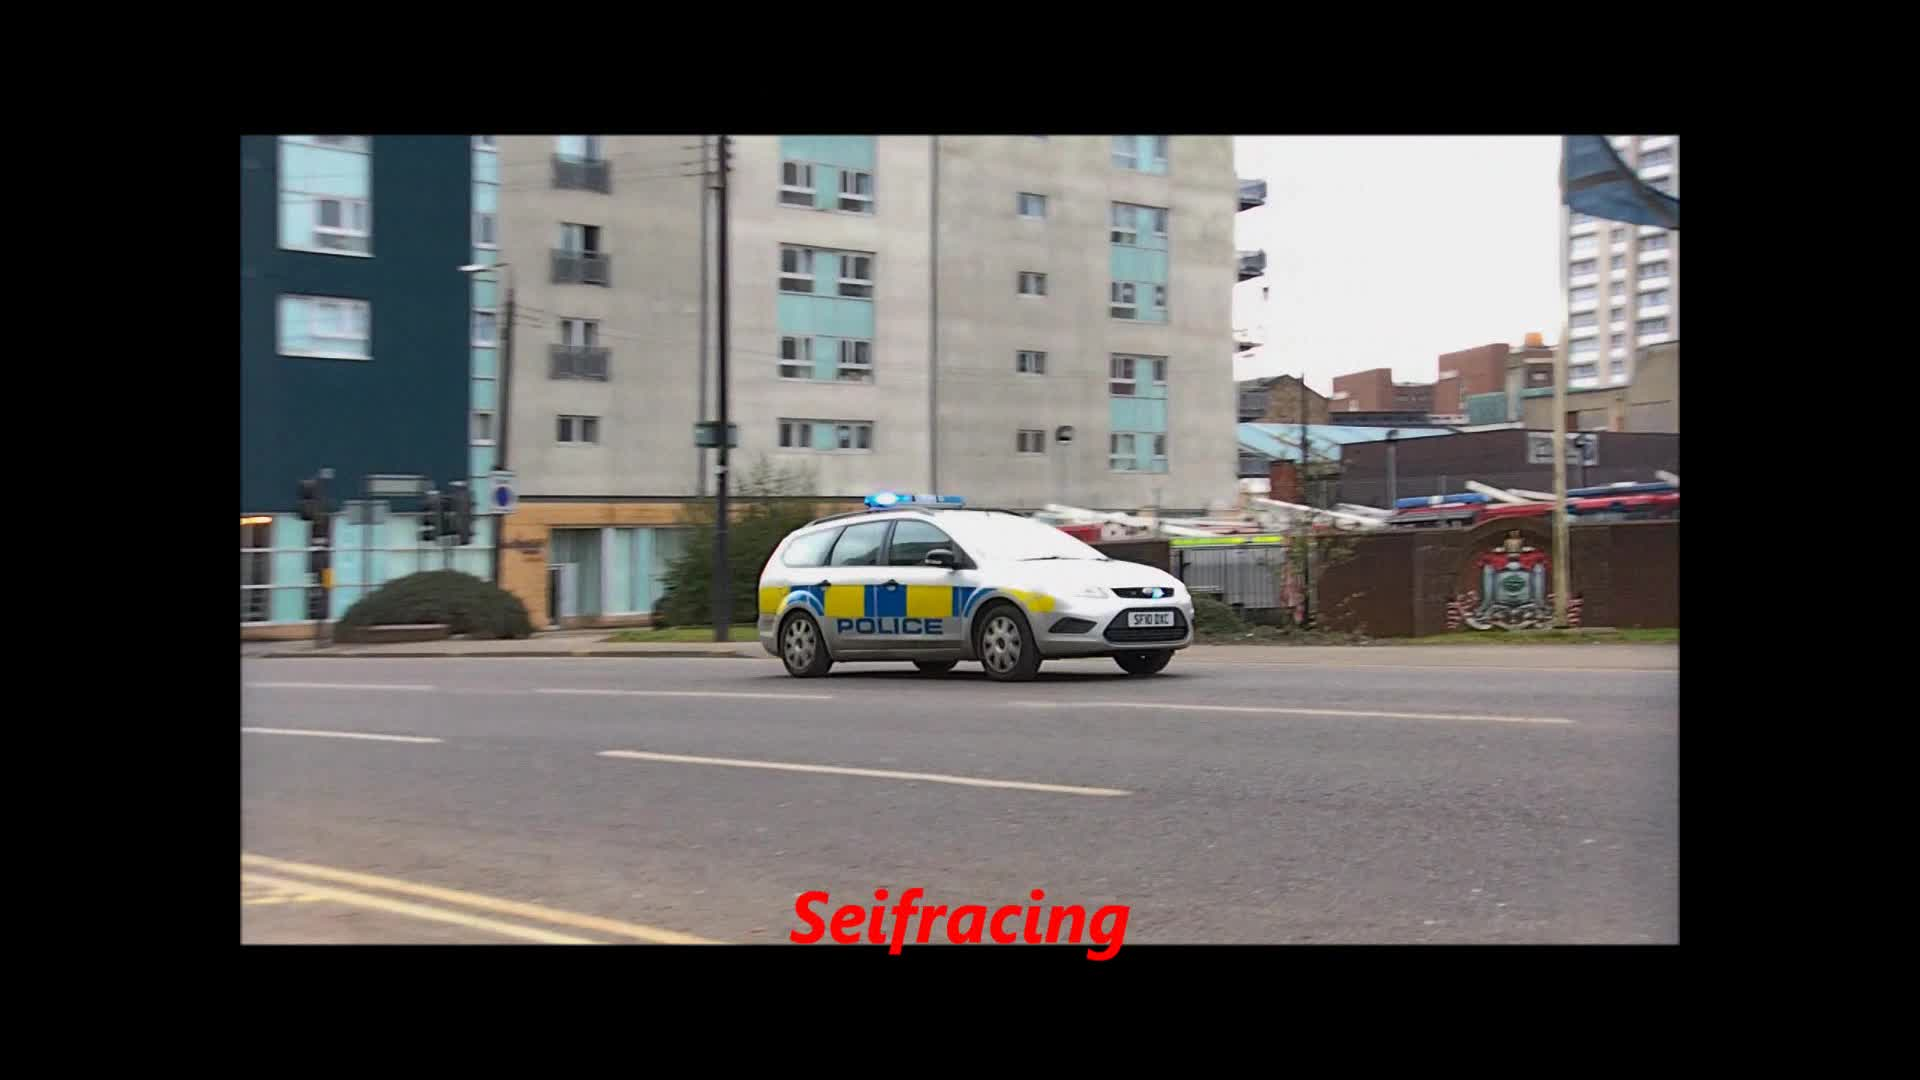 Police Scotland (collection)